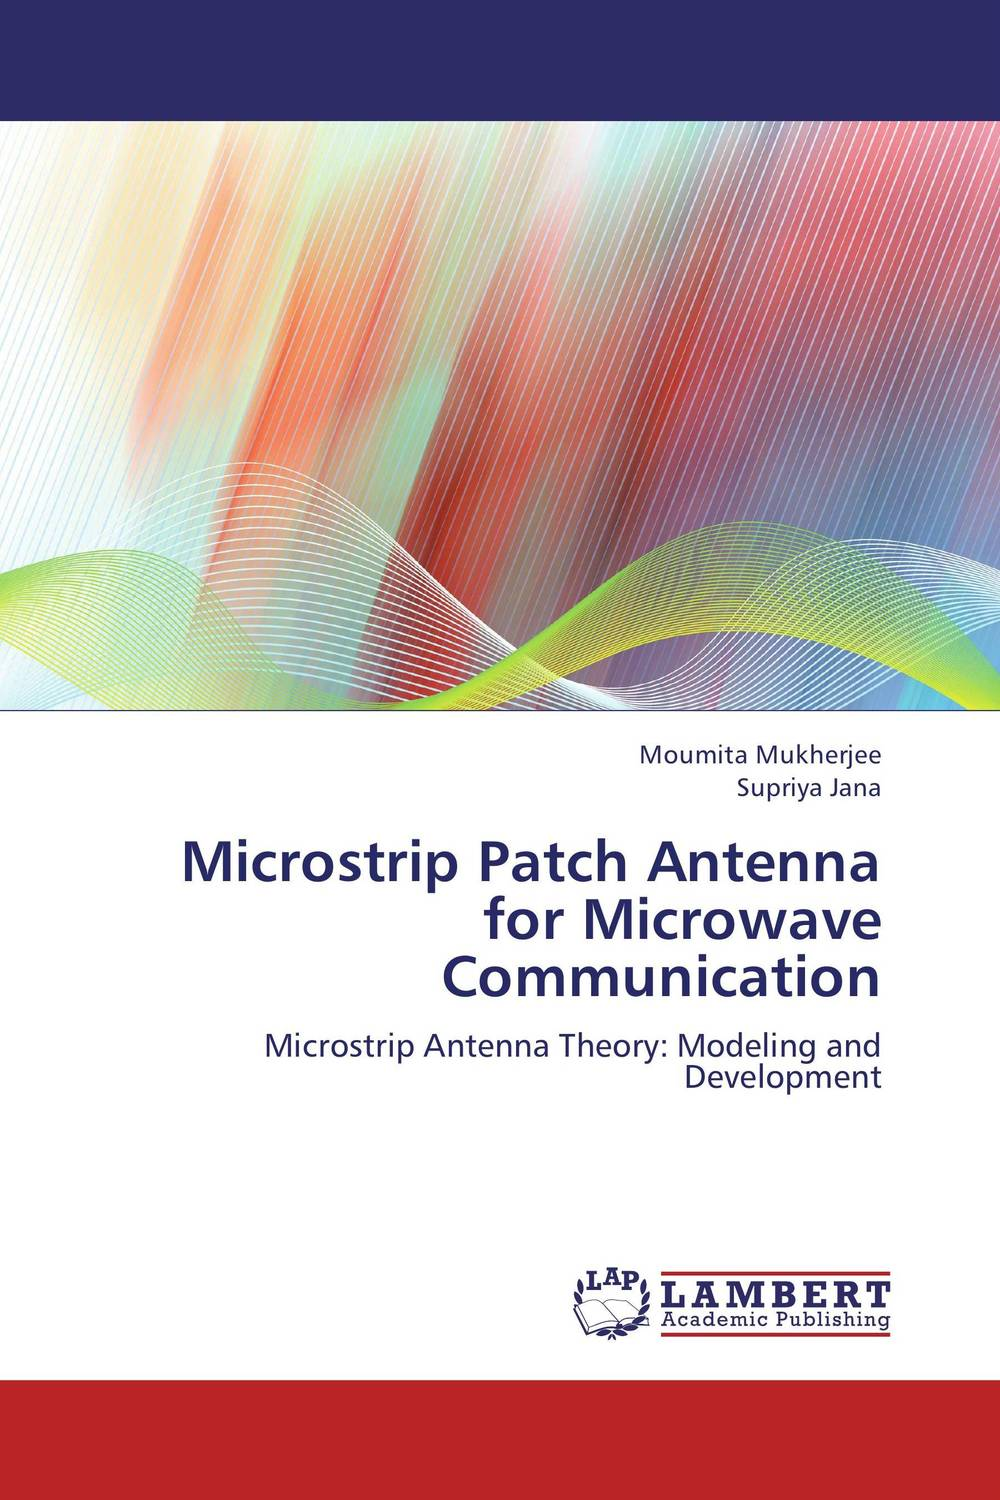 Microstrip Patch Antenna for Microwave Communication design of microstrip antenna in wireless communication